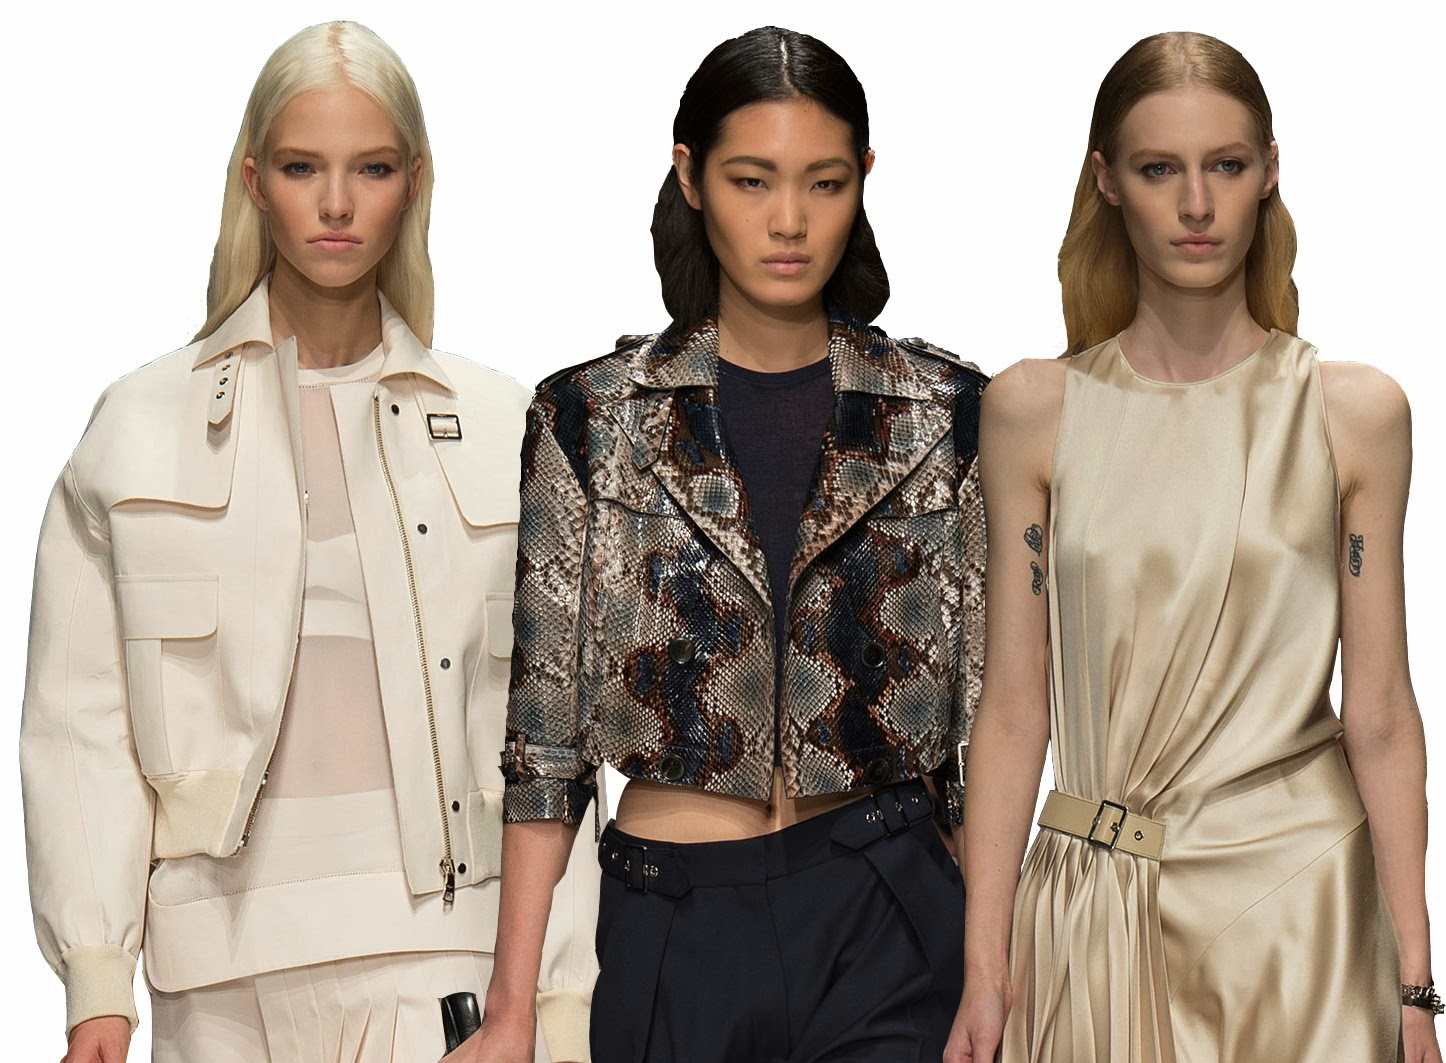 Te Dore Tought With Men Inspired Pieces But Still Feminine And With A Soft Side